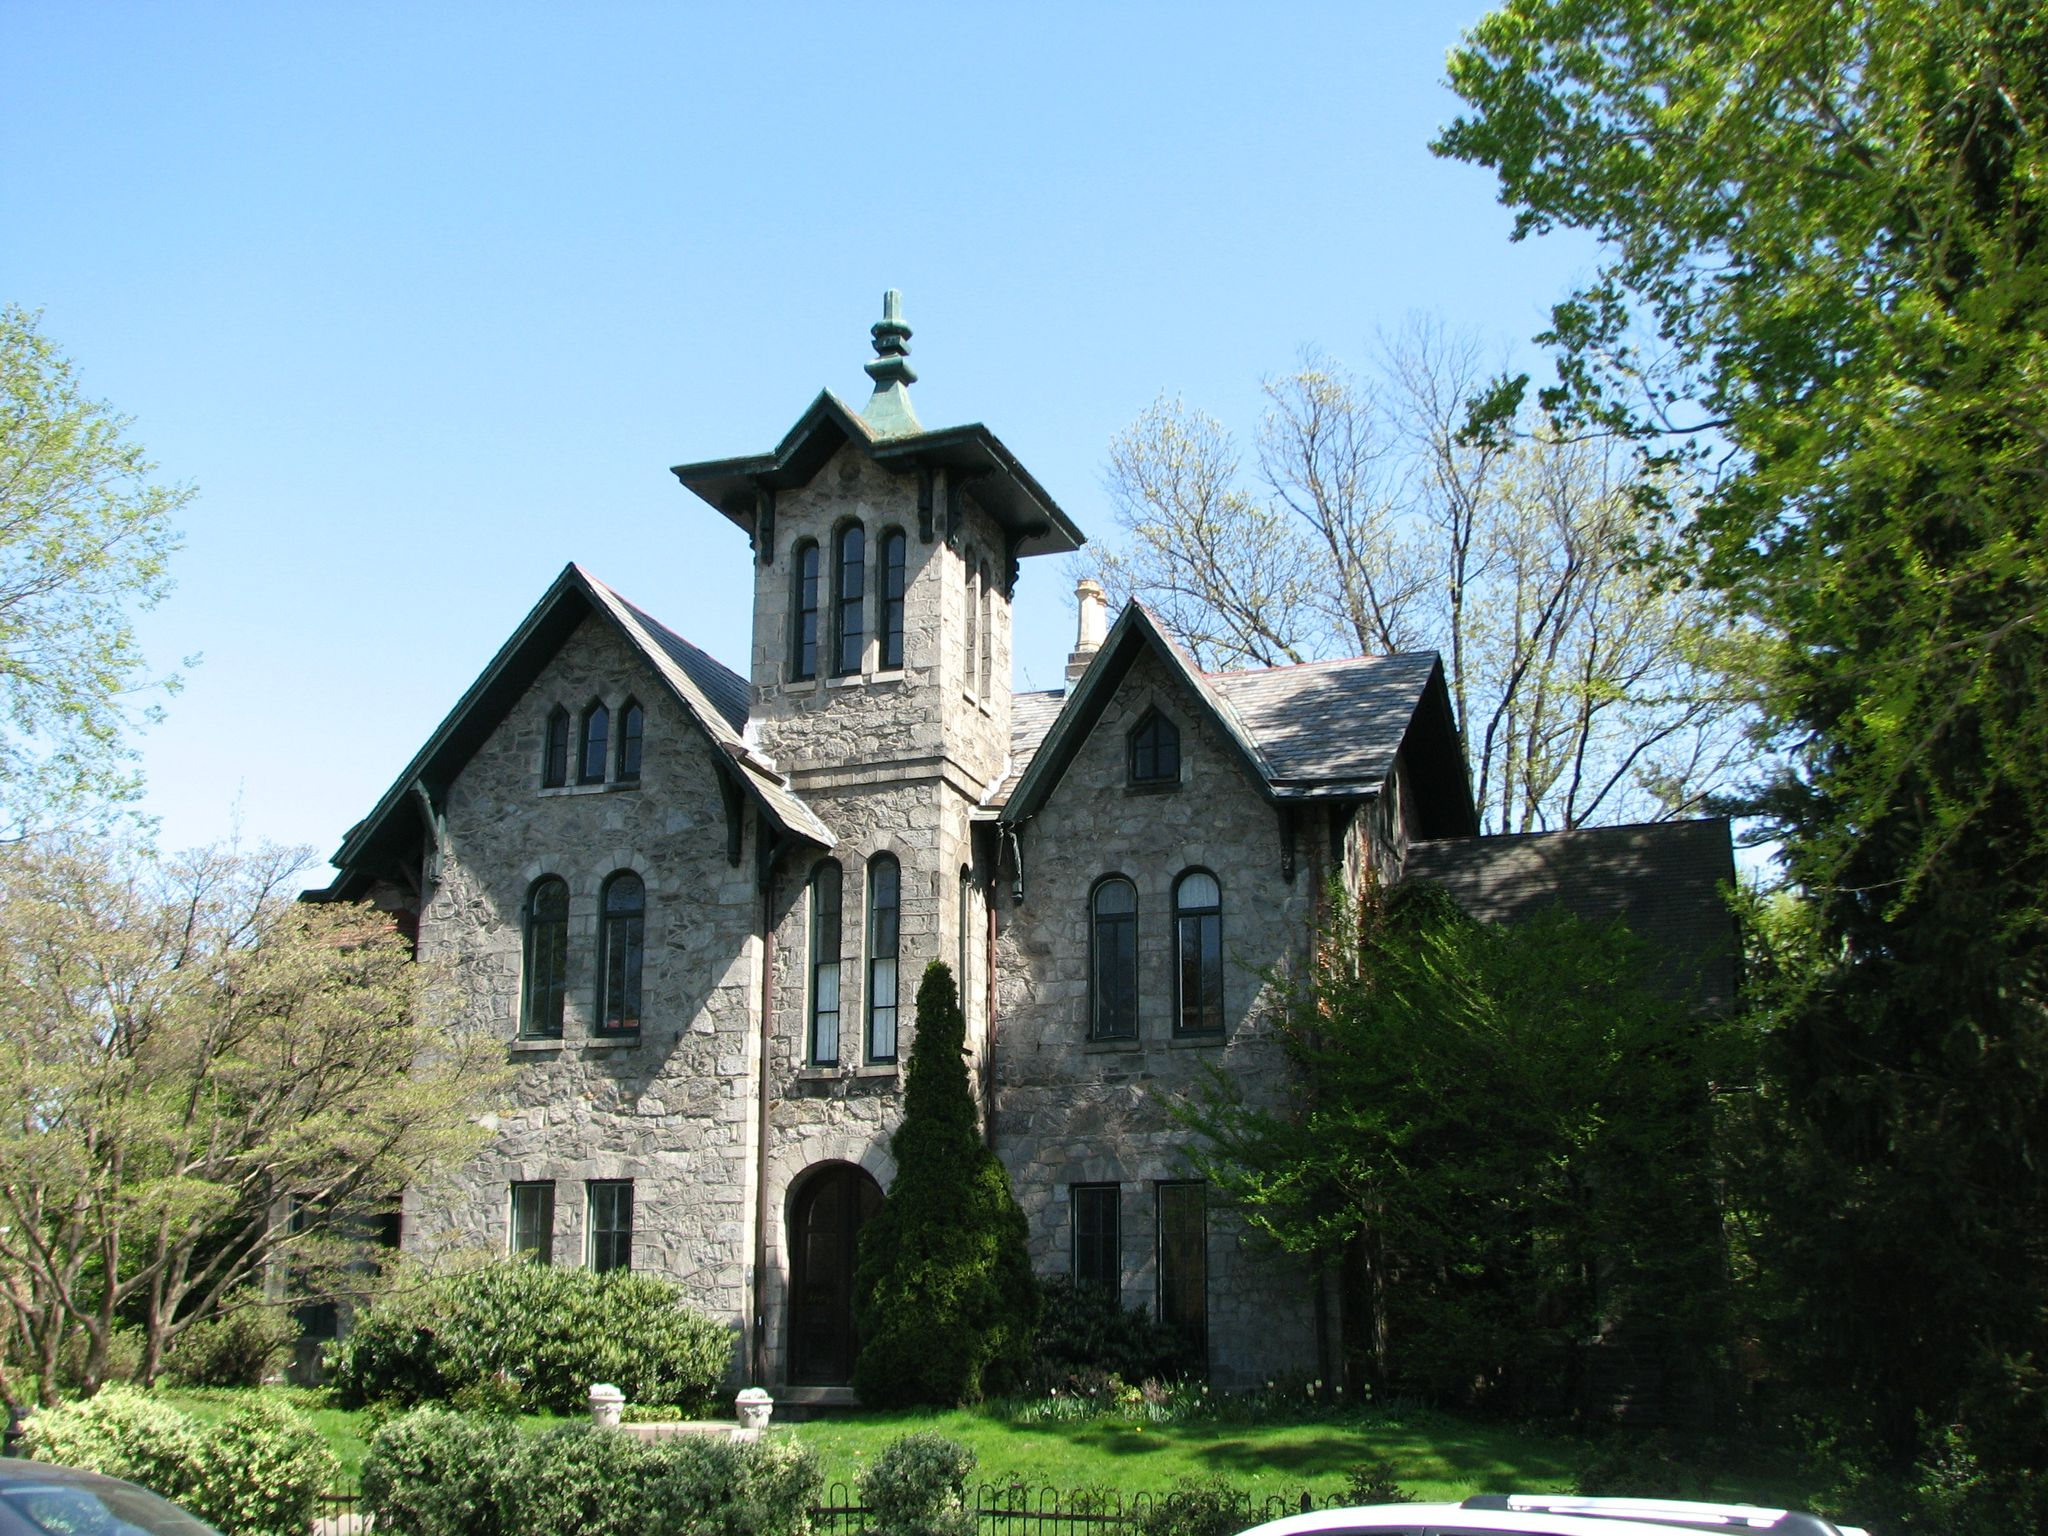 The severe Van Dyke Residence, 150 West Walnut, is also attributed to Samuel Sloan.